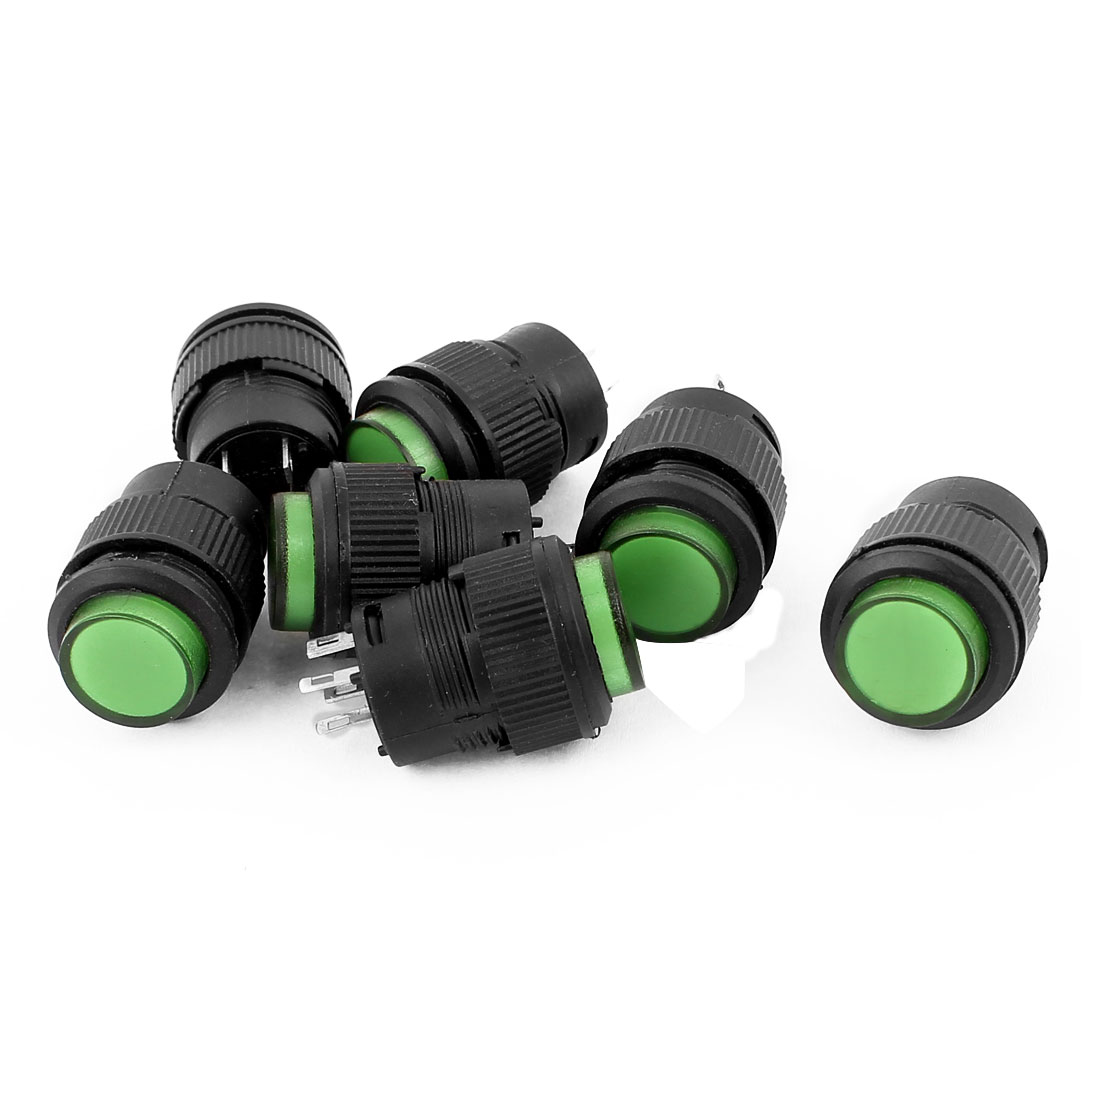 7Pcs DC 12V SPST 4 Pin Momentary Green Indicator Lamp Push Button Switch